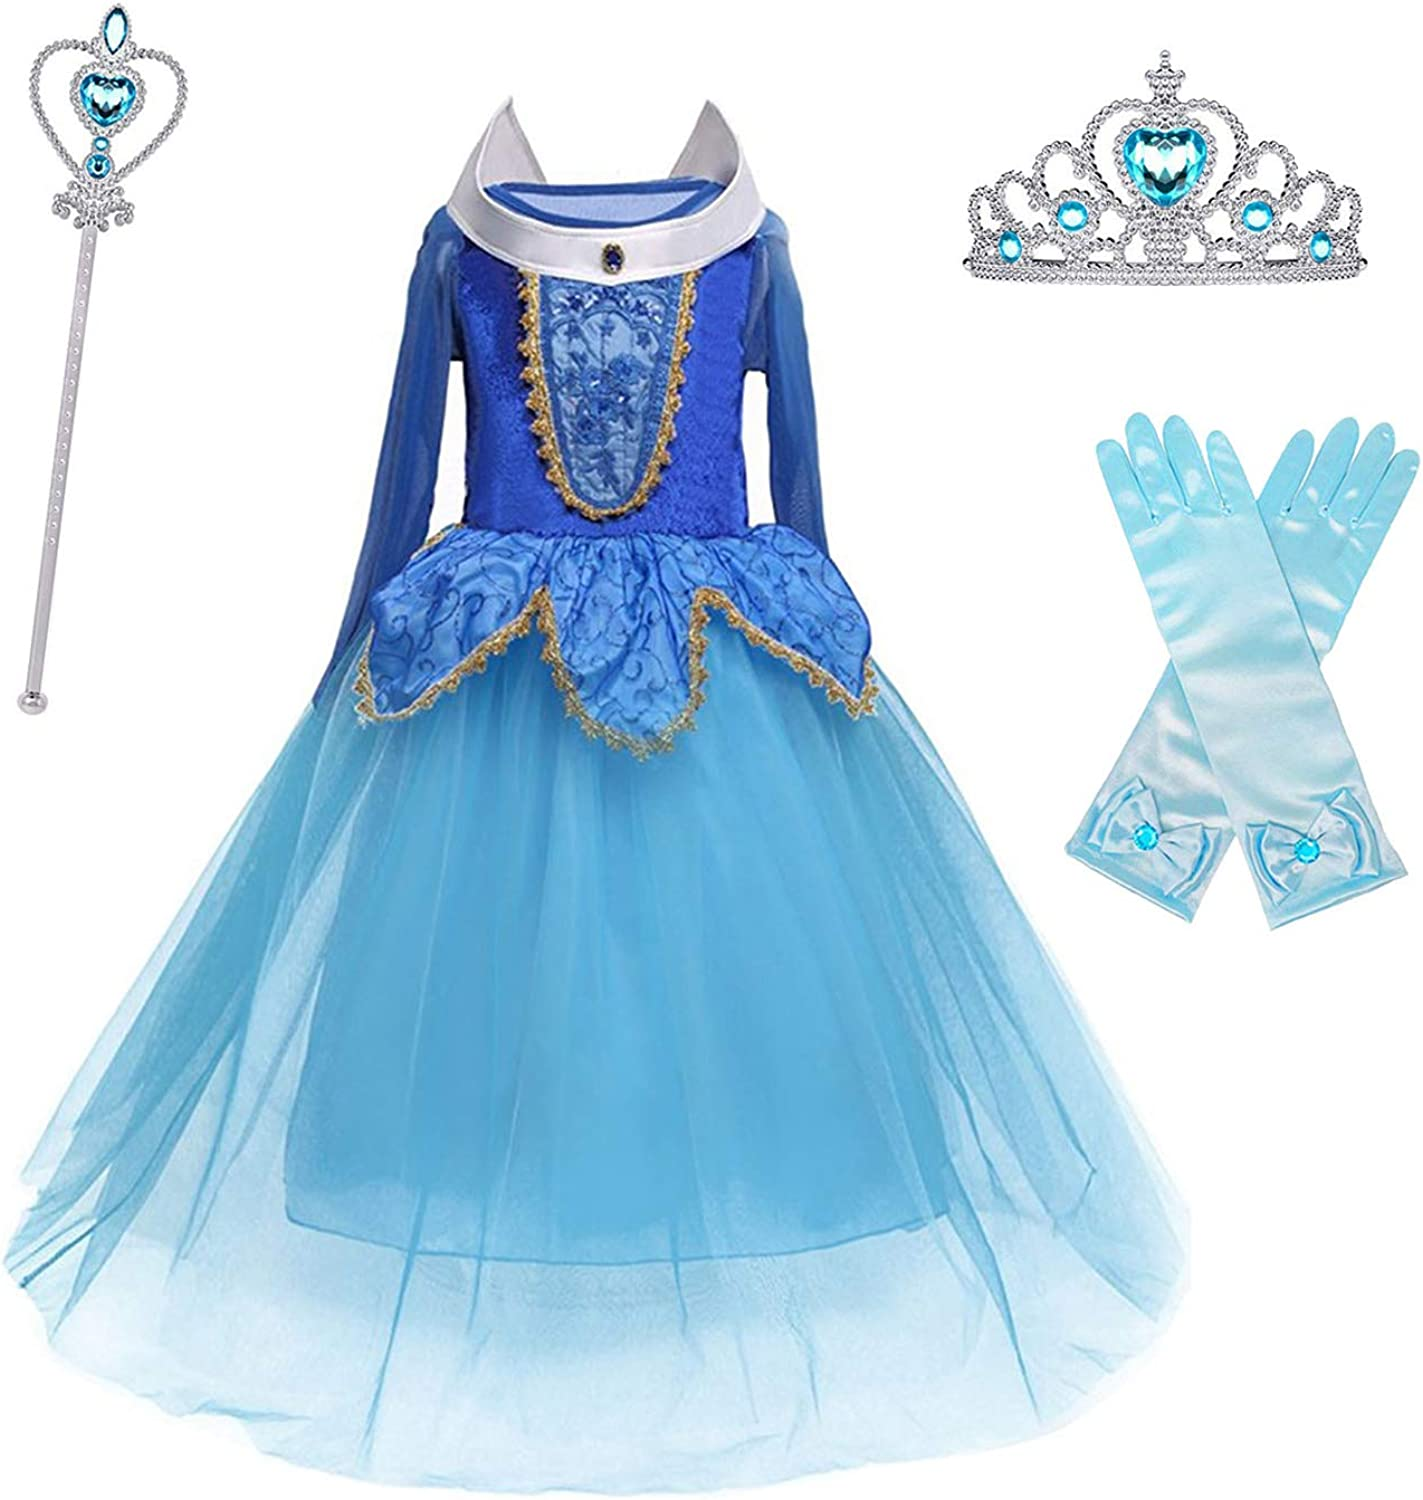 HNXDYY Girls Princess Dress Costume Carnival Party Elegant Dress Size 4-9 Years